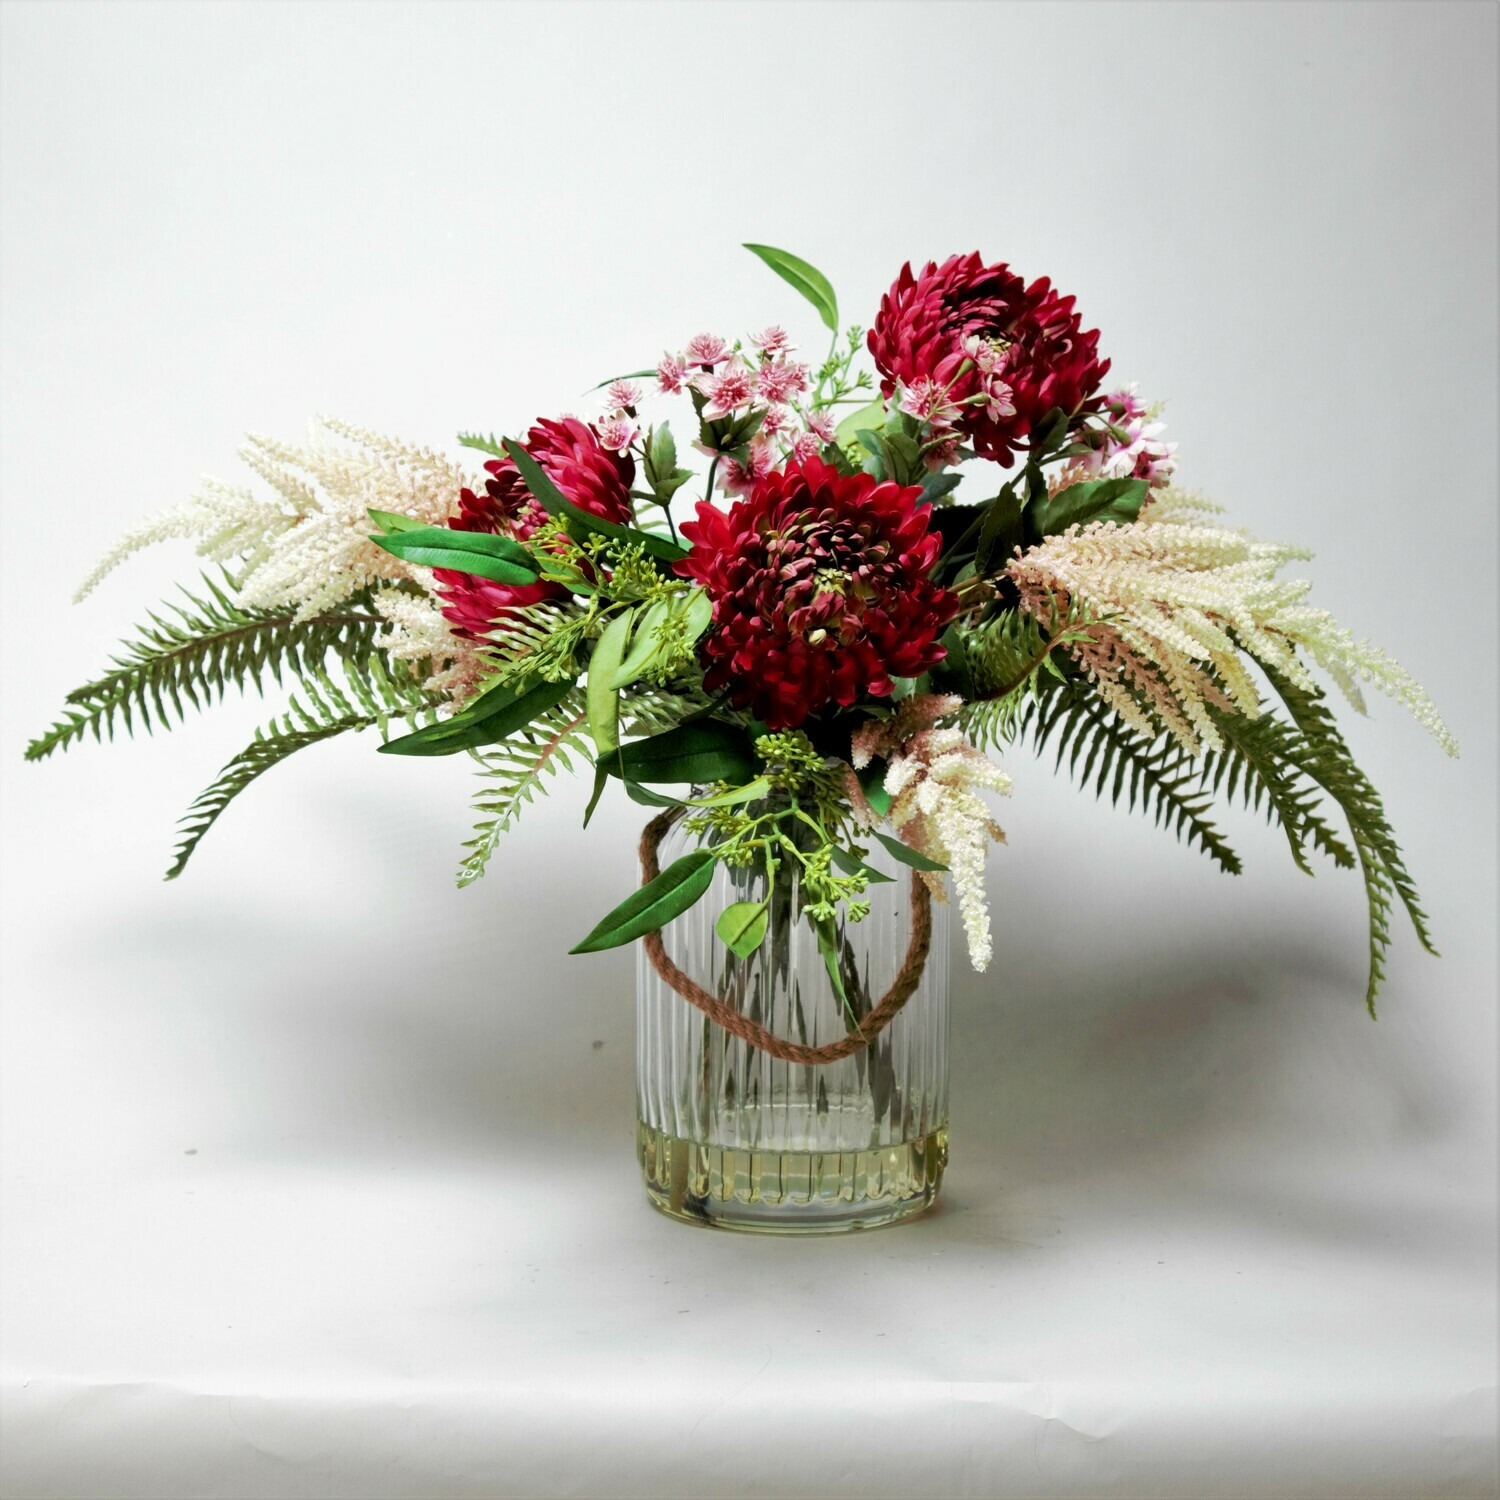 Chrysanthemums, Astrantia and Astilbe with Foliage in a Rope Lantern